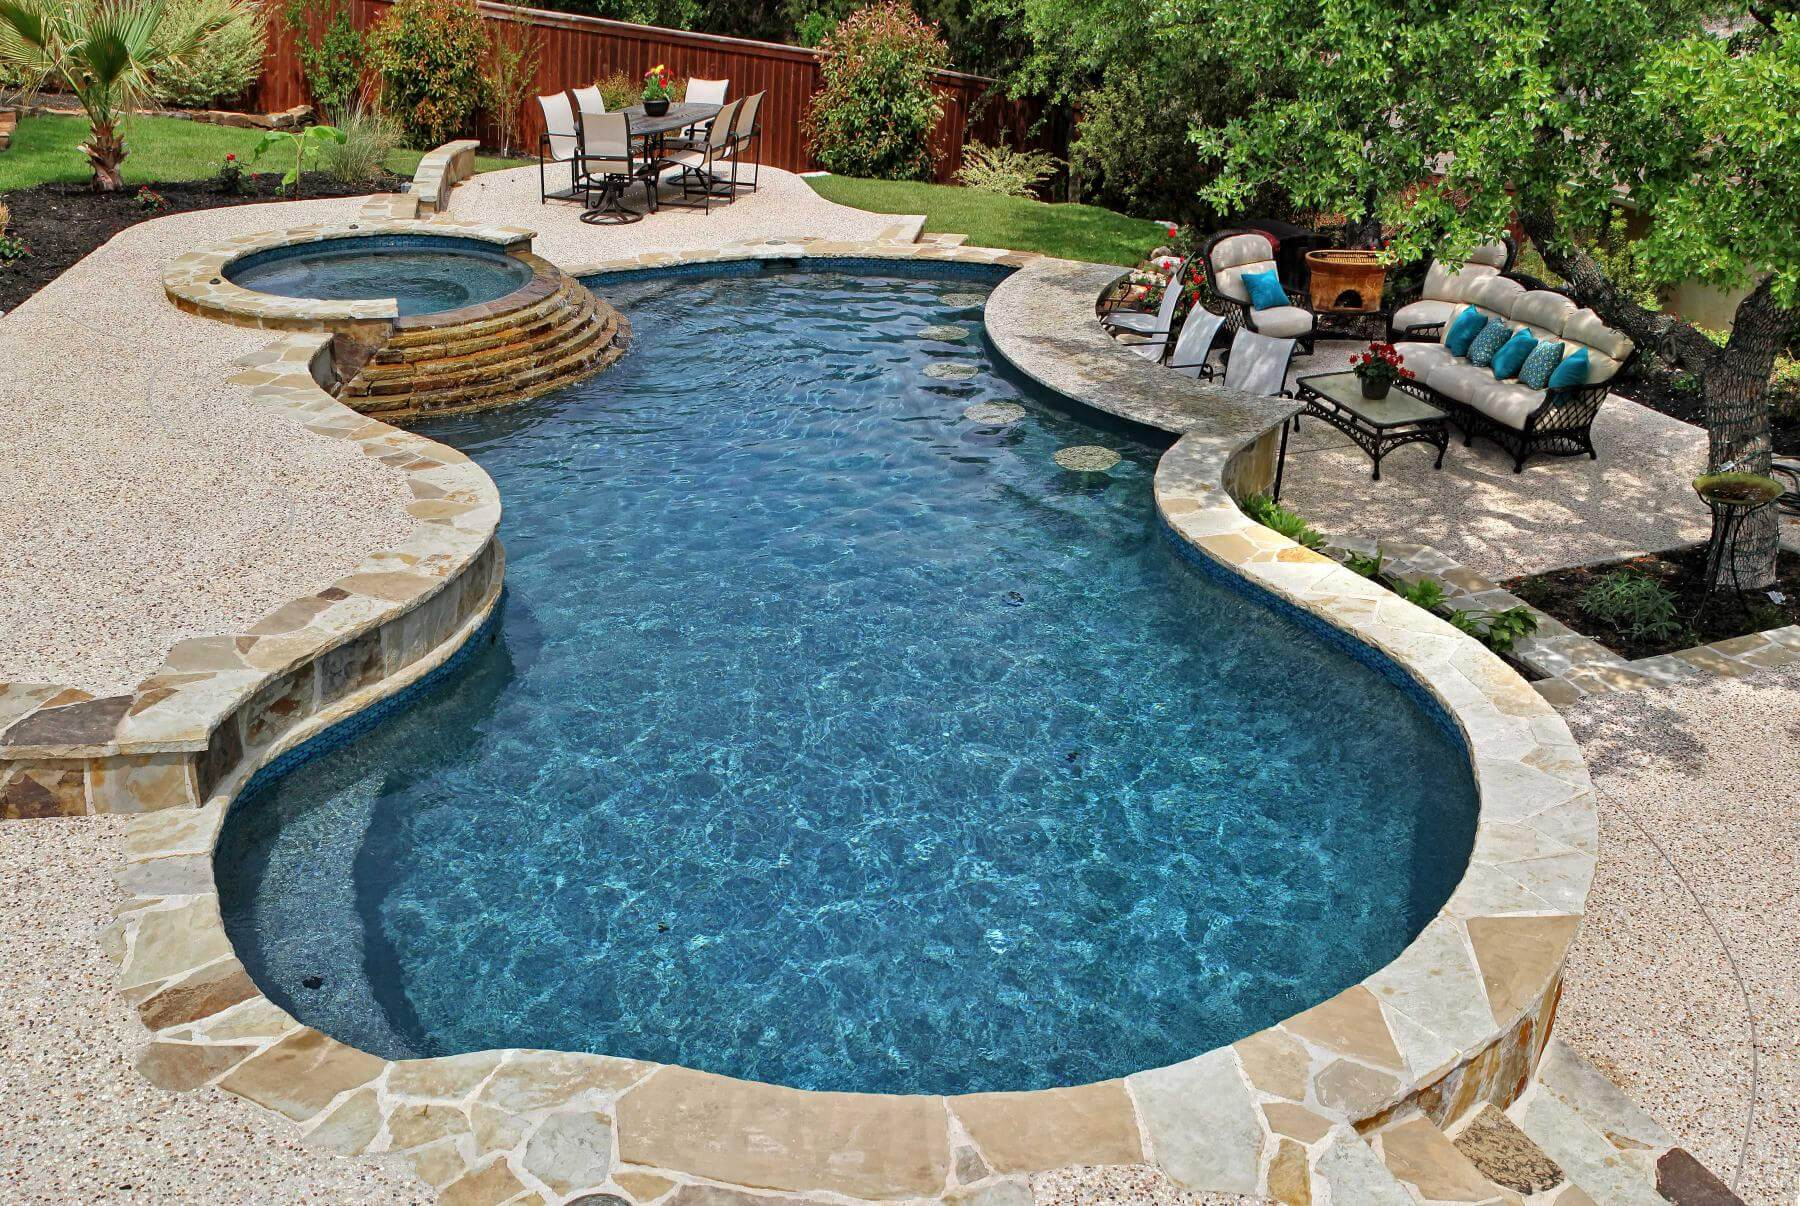 Summer 2015 pool trends and pool design ideas keith zars for Pool design 2015